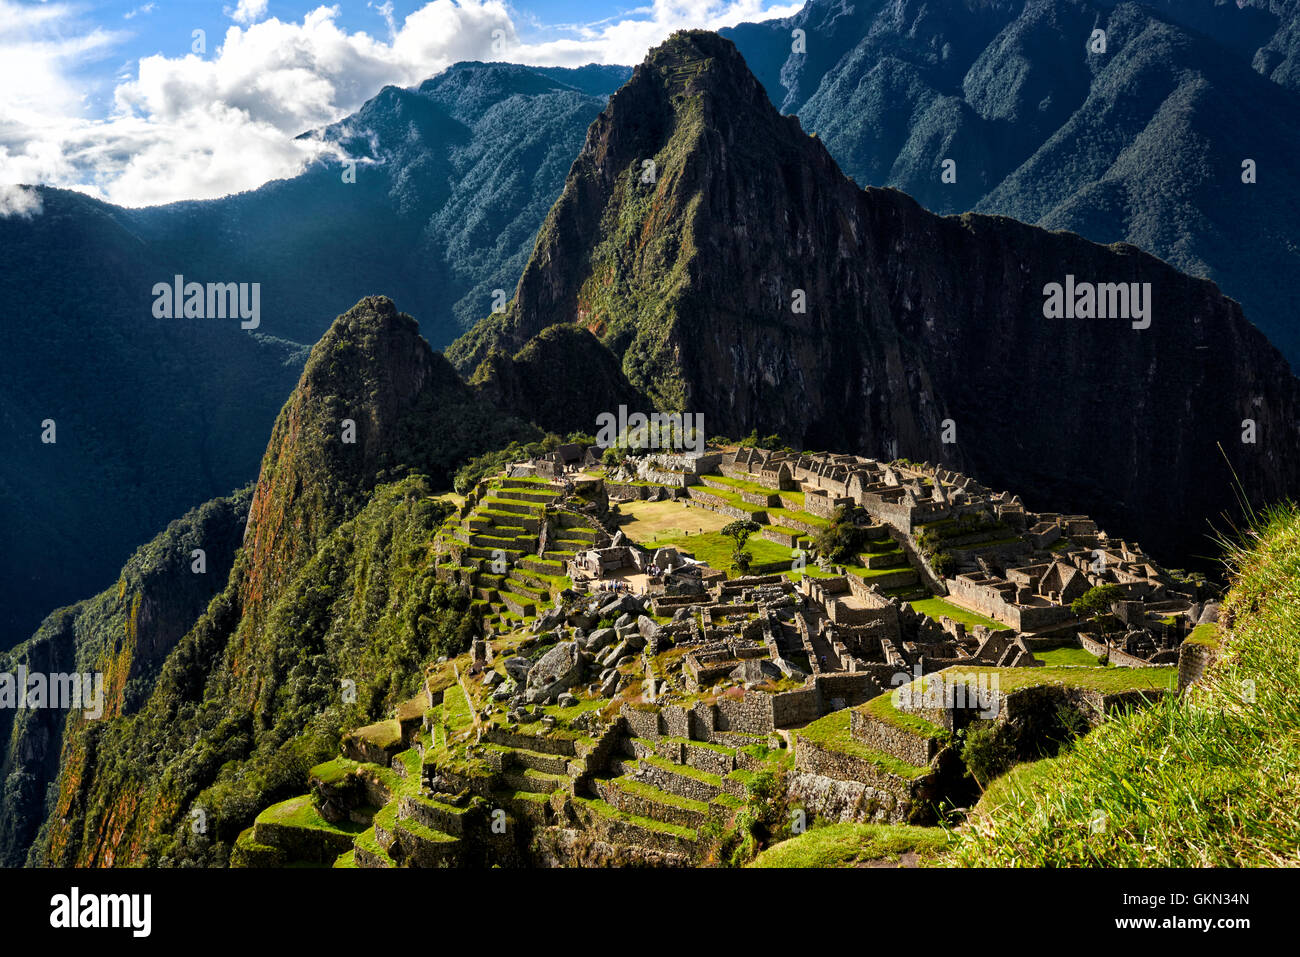 MACHU PICCHU, PERU - MAY 31, 2015: View of the ancient Inca City of Machu Picchu. The 15-th century Inca site.'Lost - Stock Image